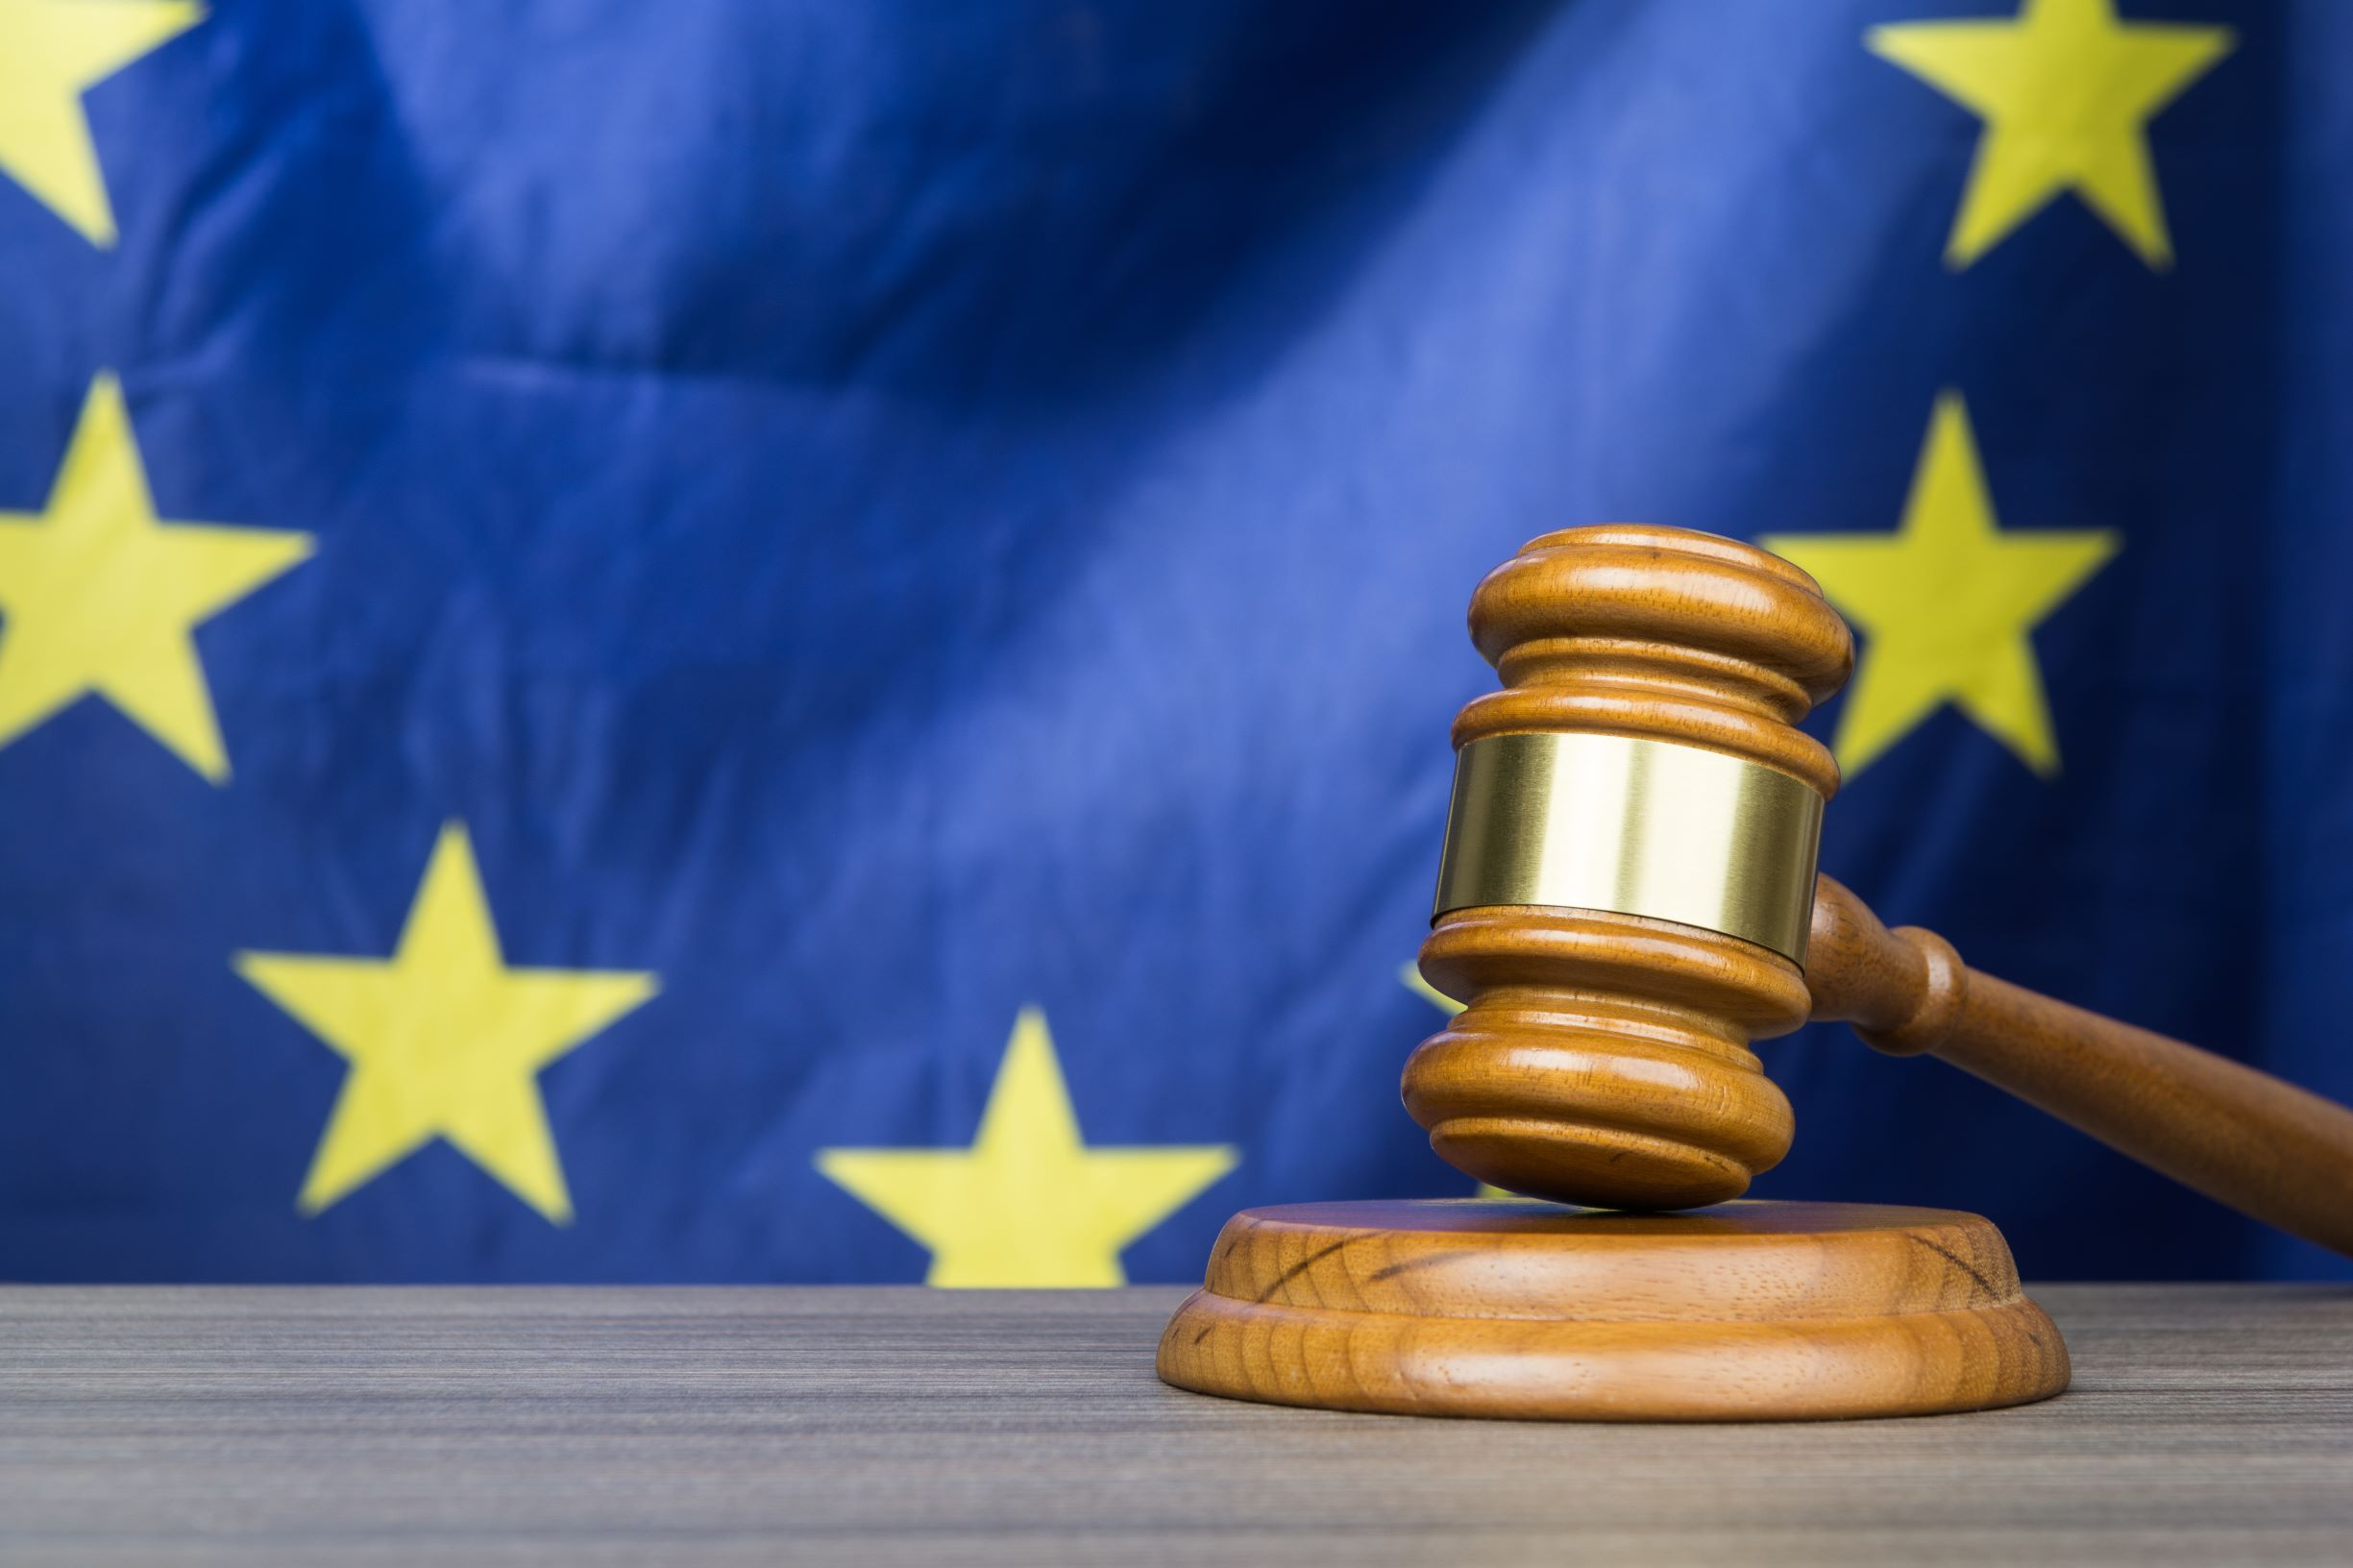 European Union with Gavel